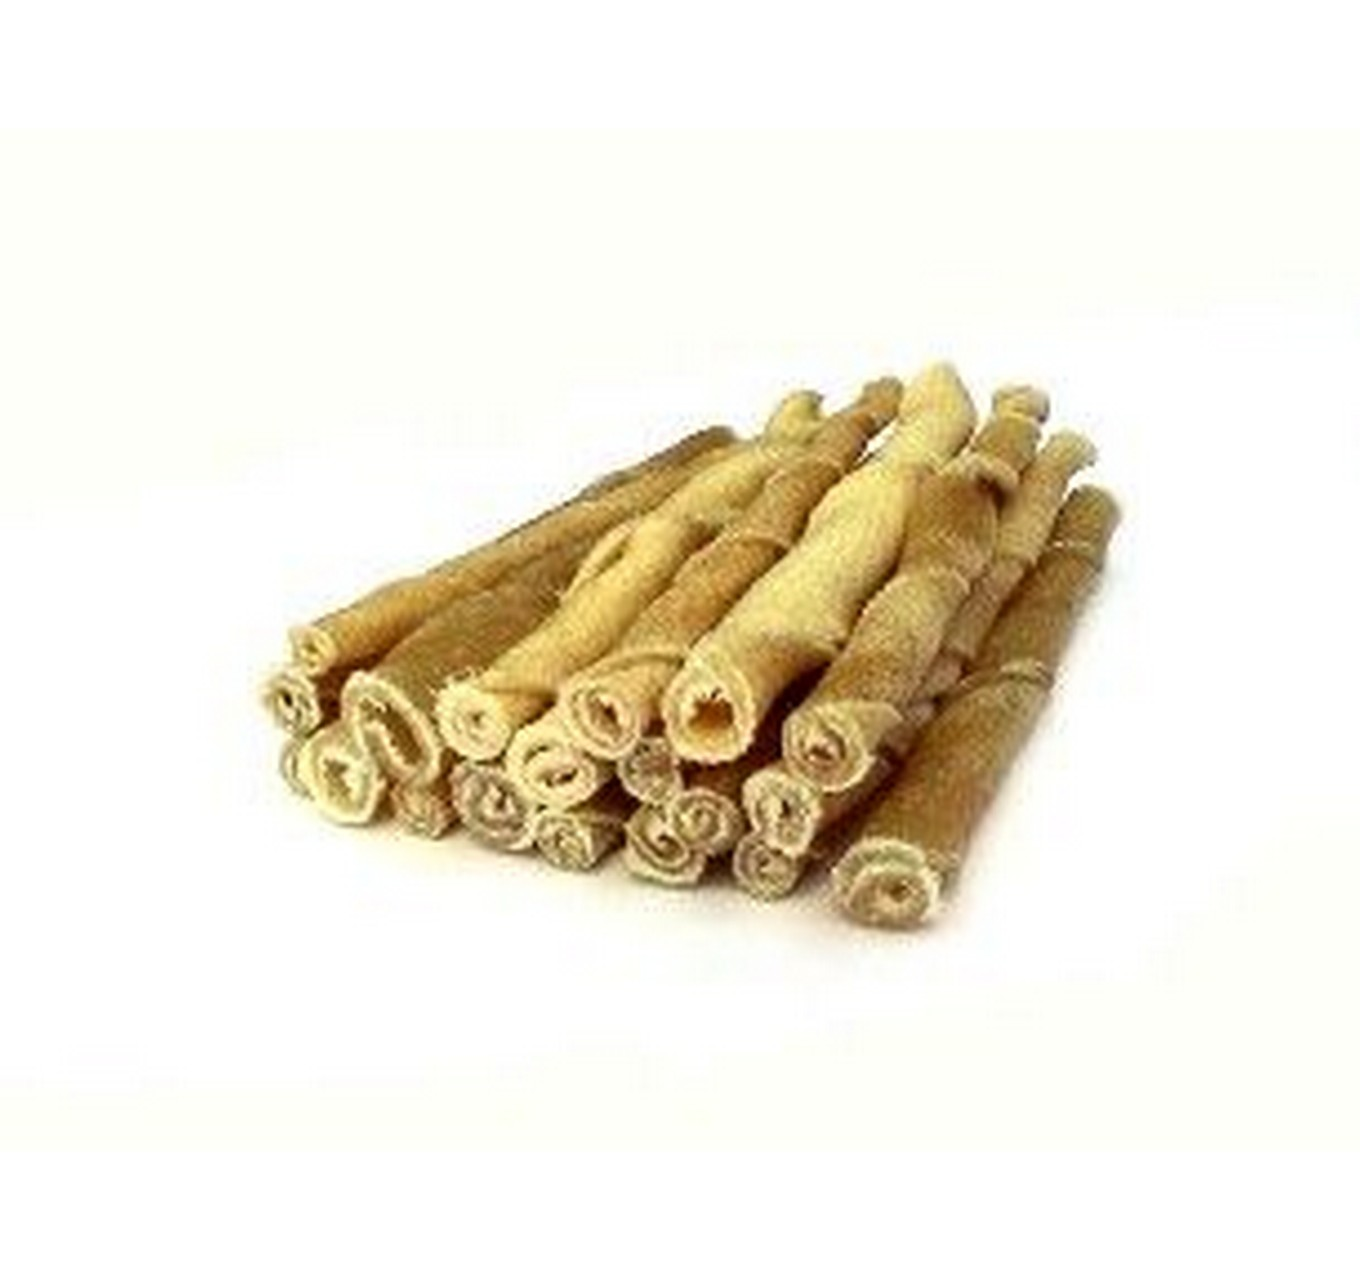 Rawhide Twist Sticks 100pk